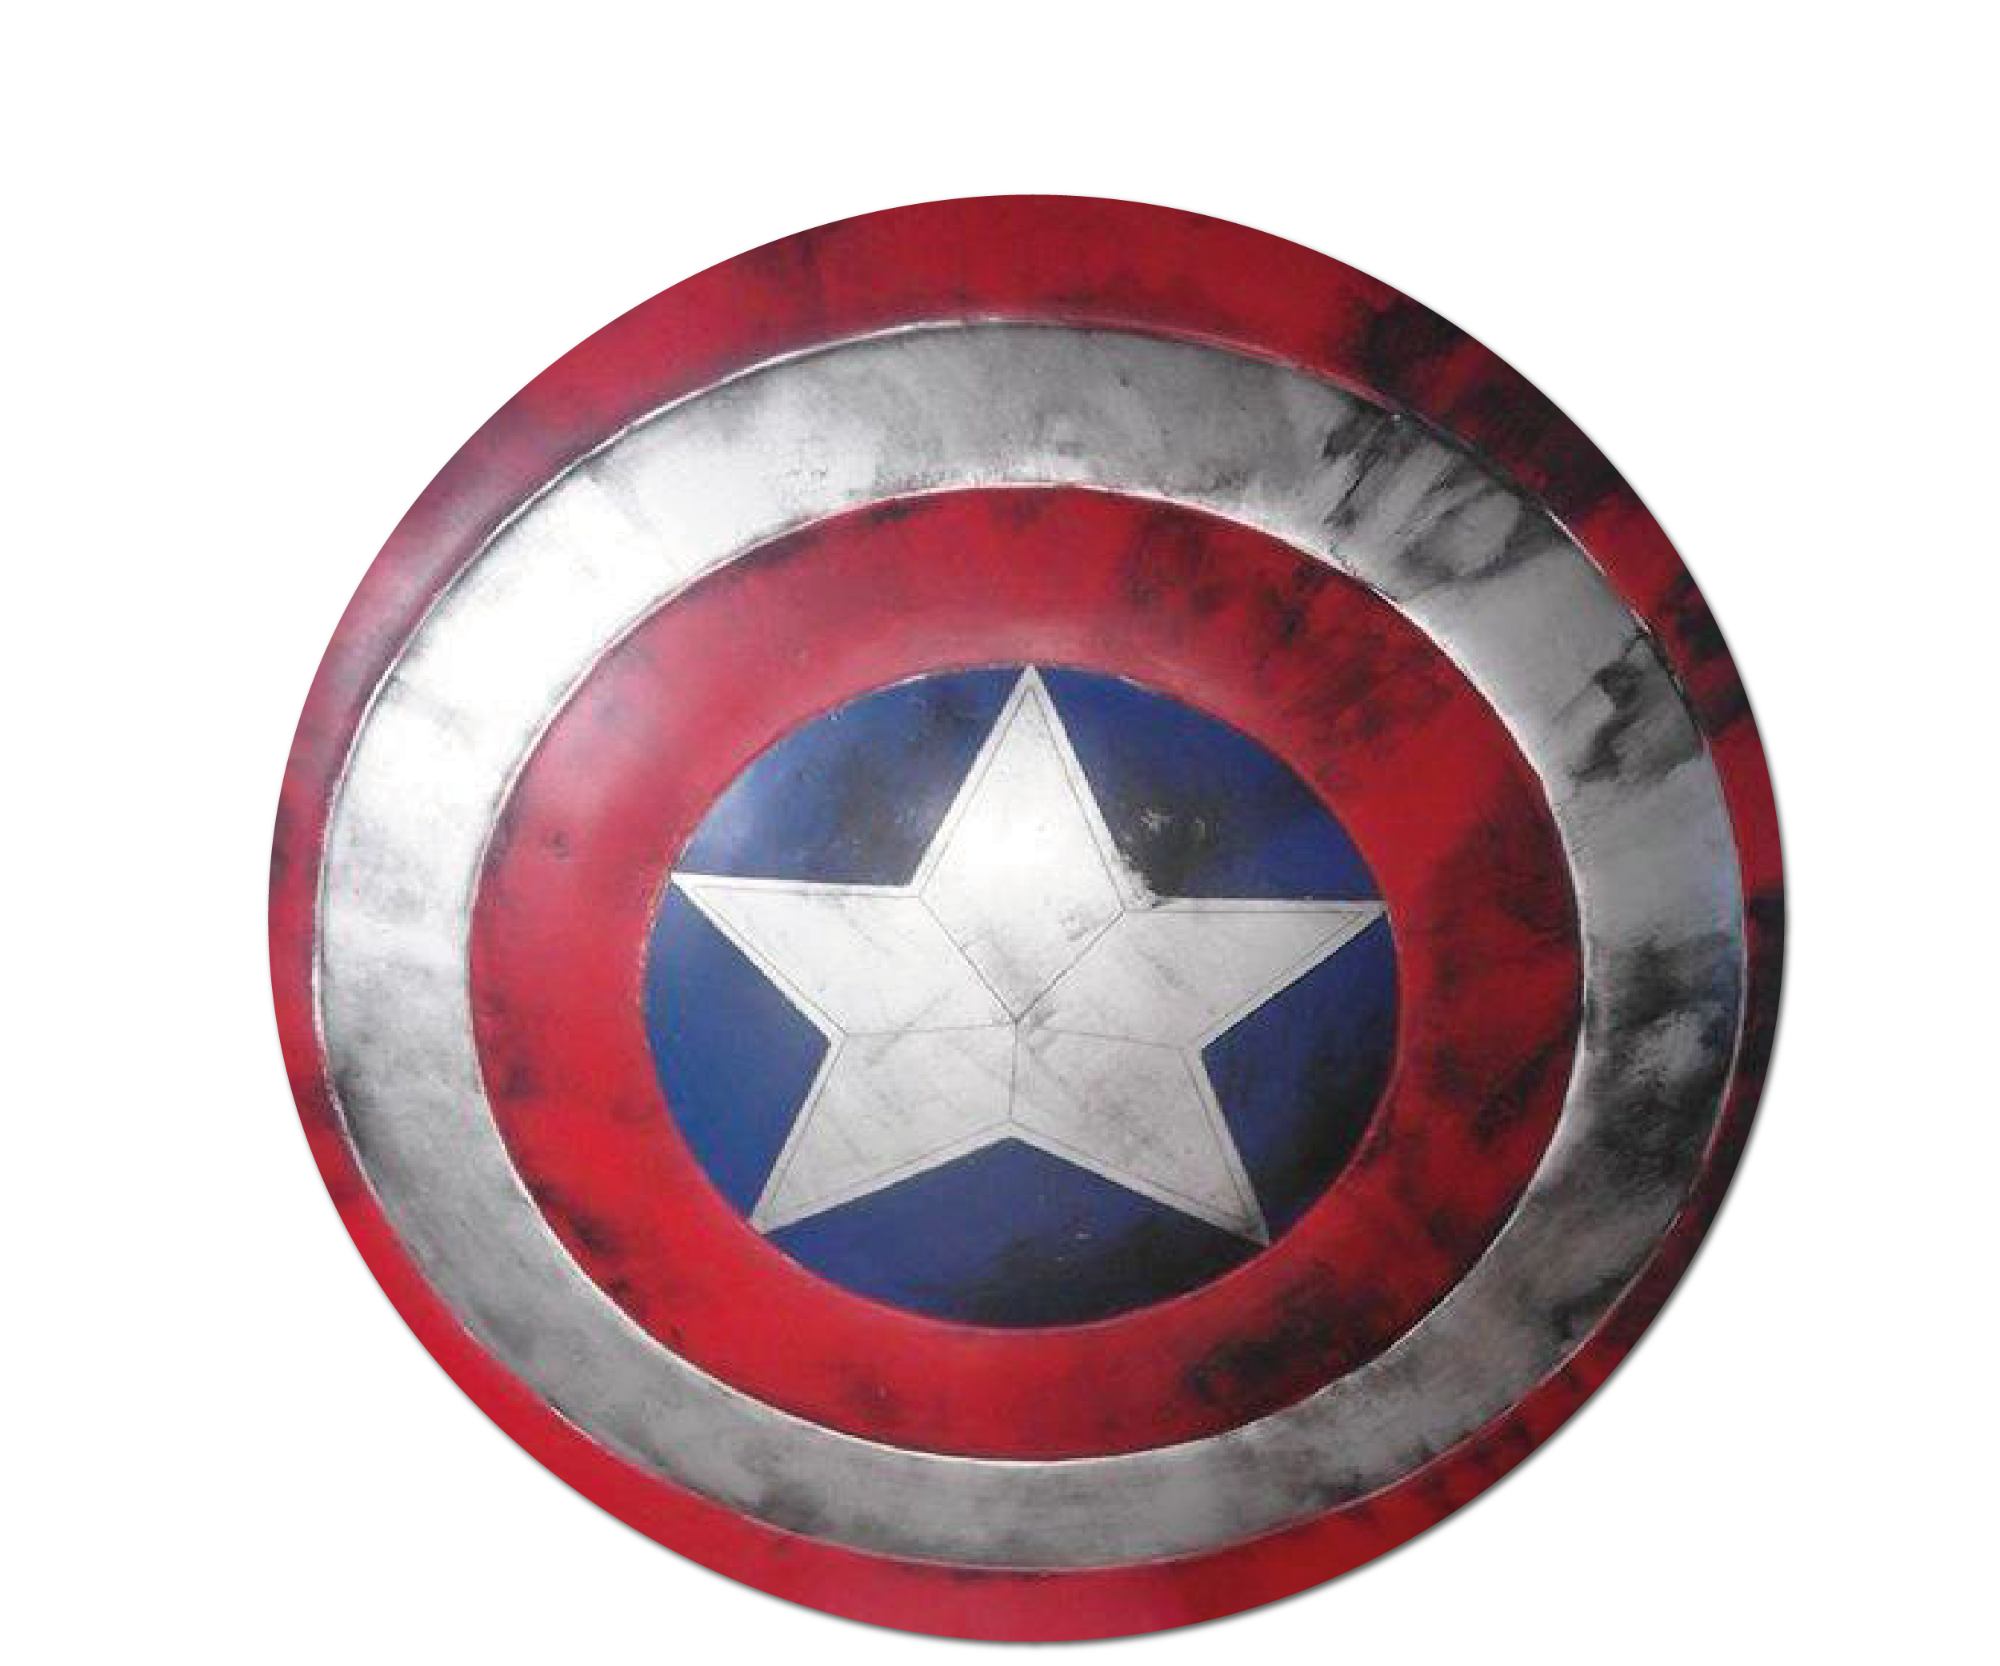 Battle Damage Captain America Shield